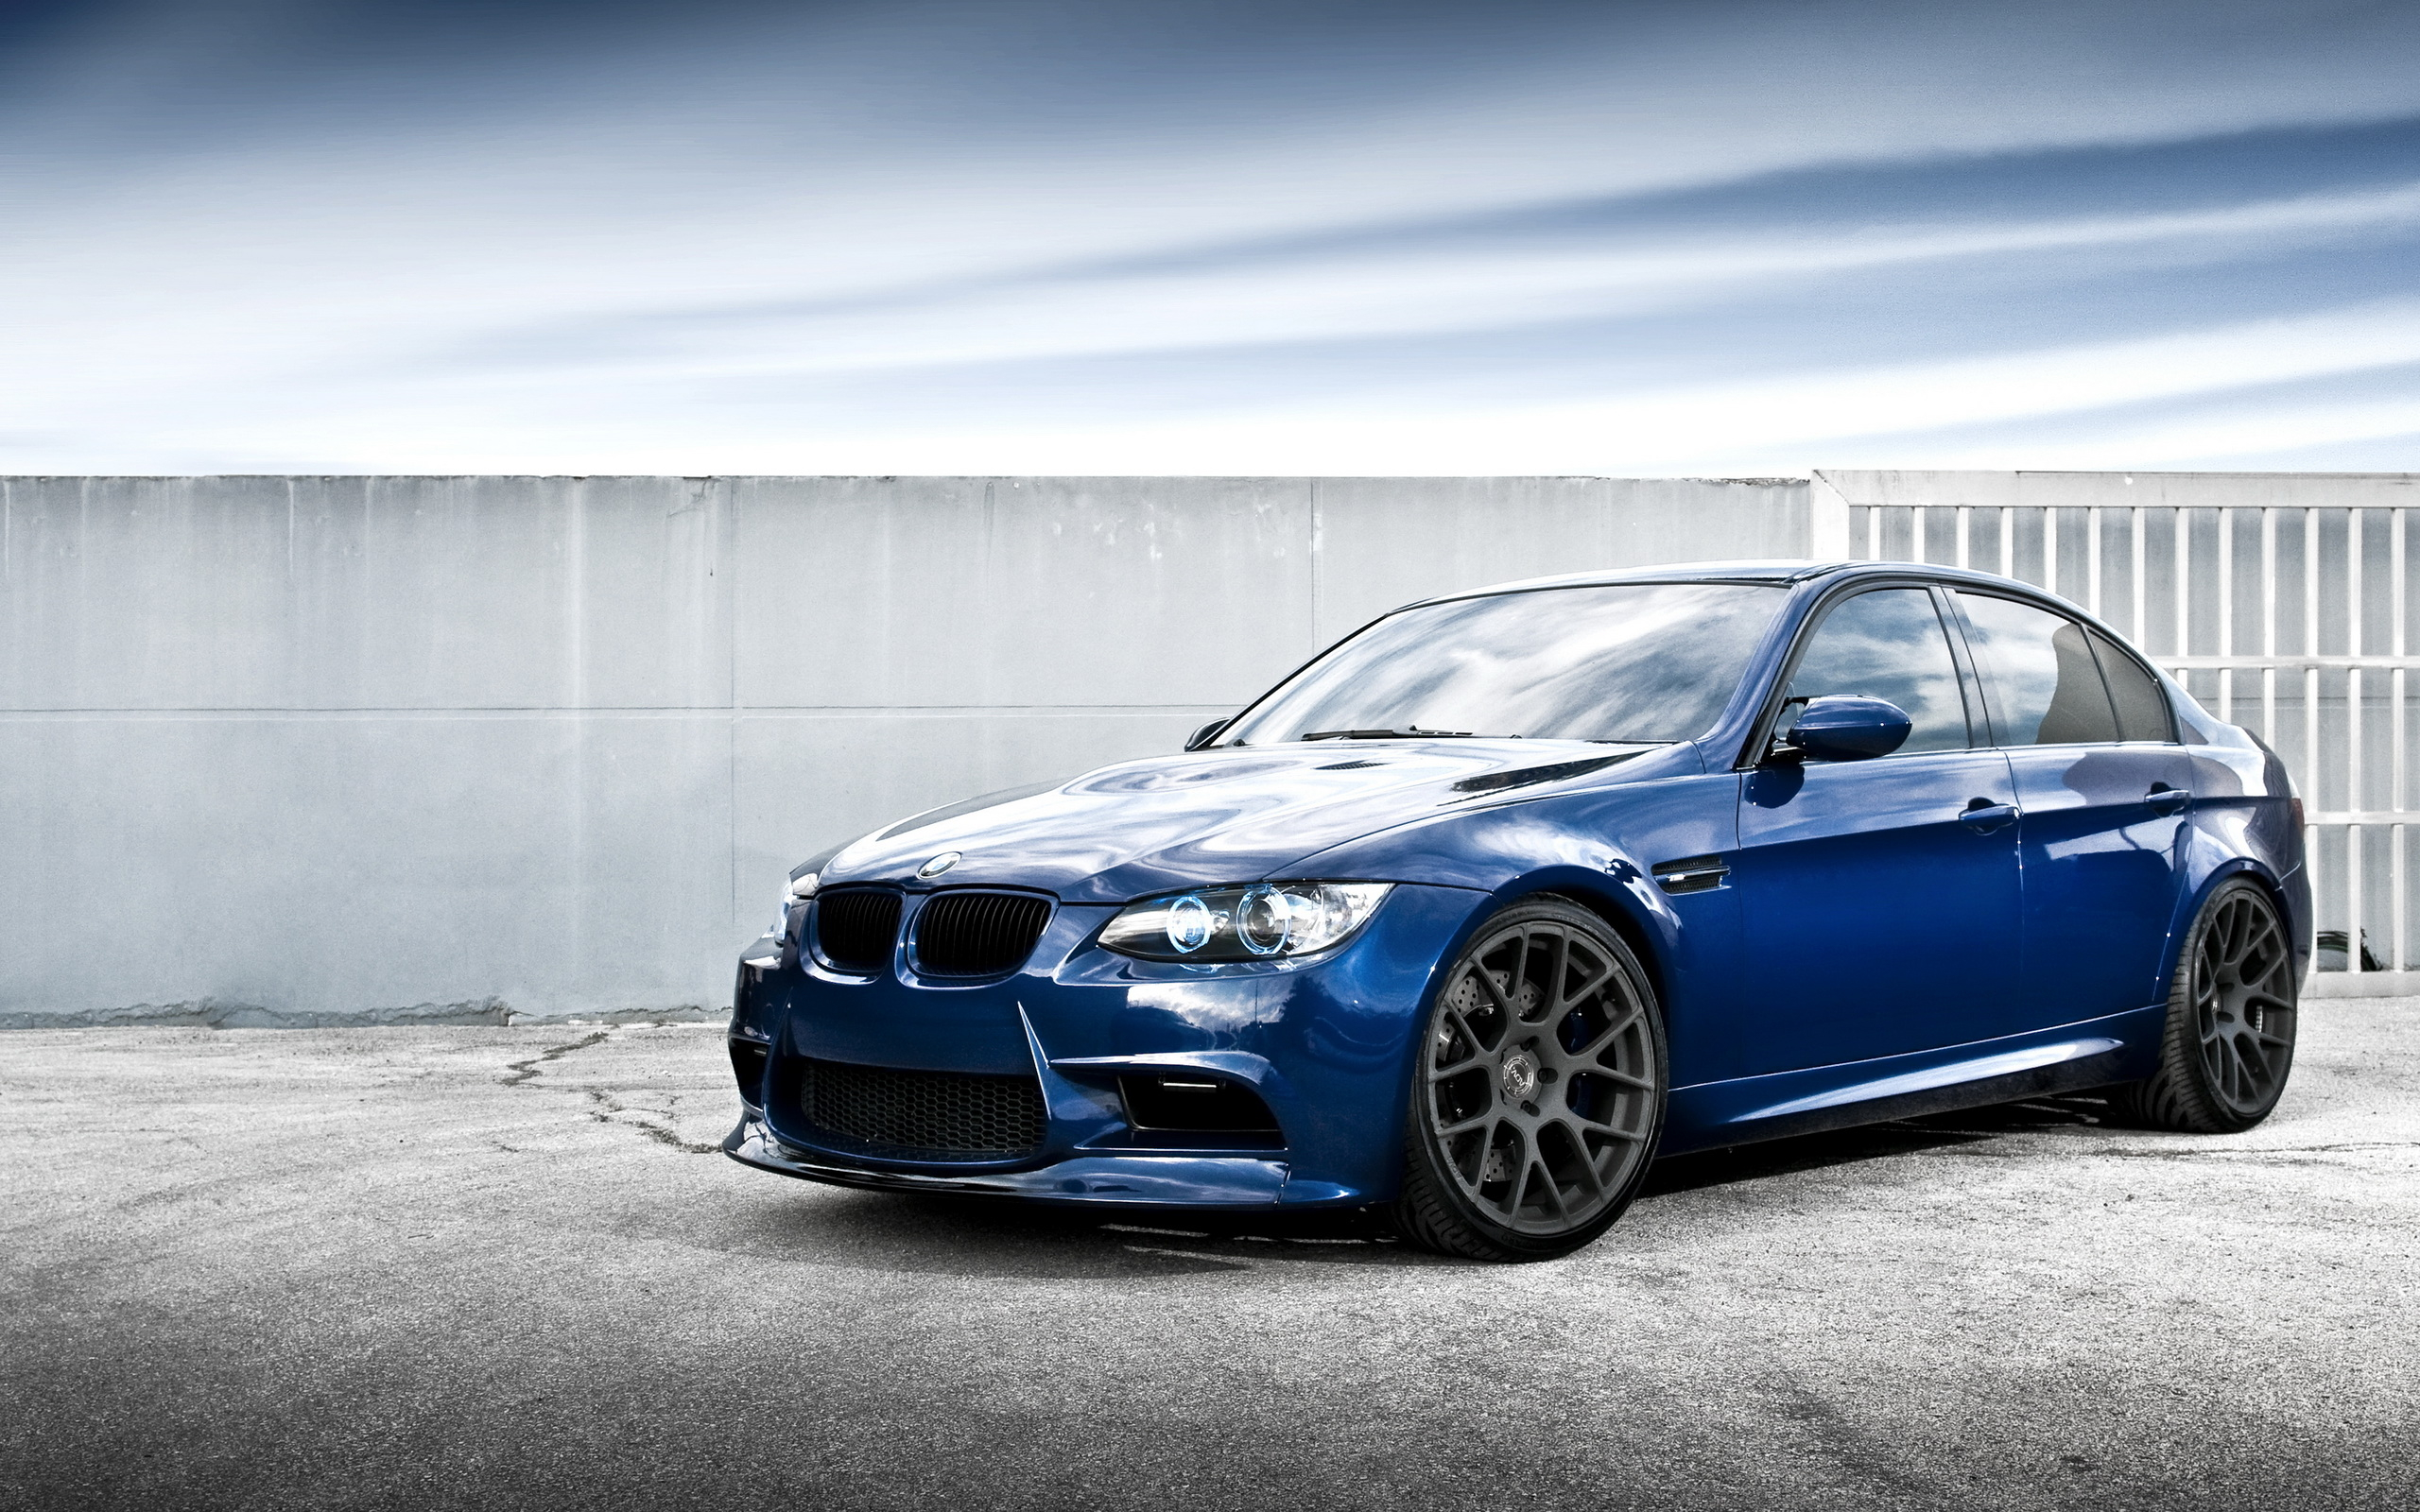 BMW M3 wallpapers and images   wallpapers pictures photos 2560x1600